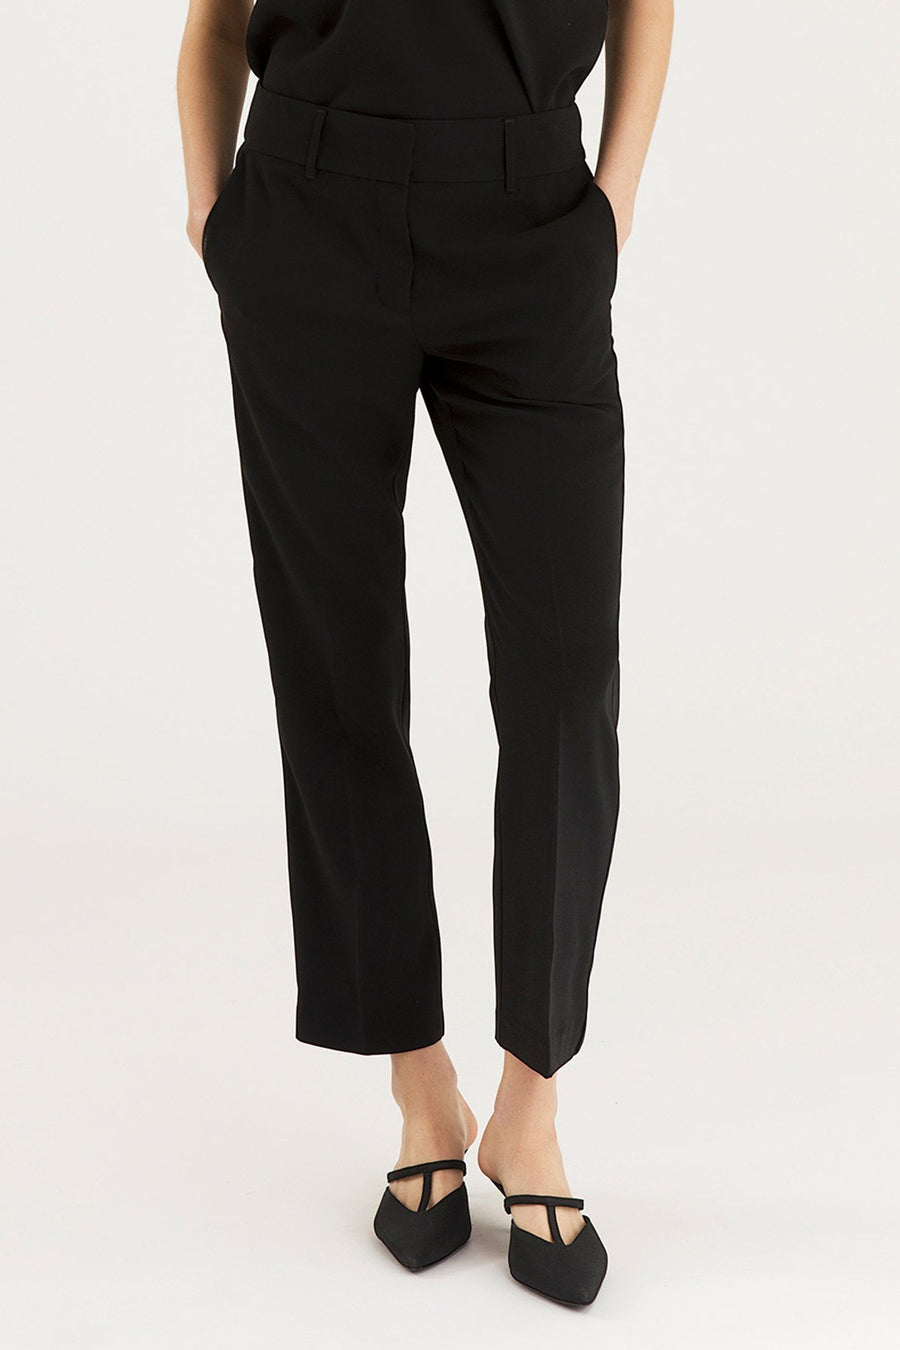 BENNY TROUSERS - BLACK